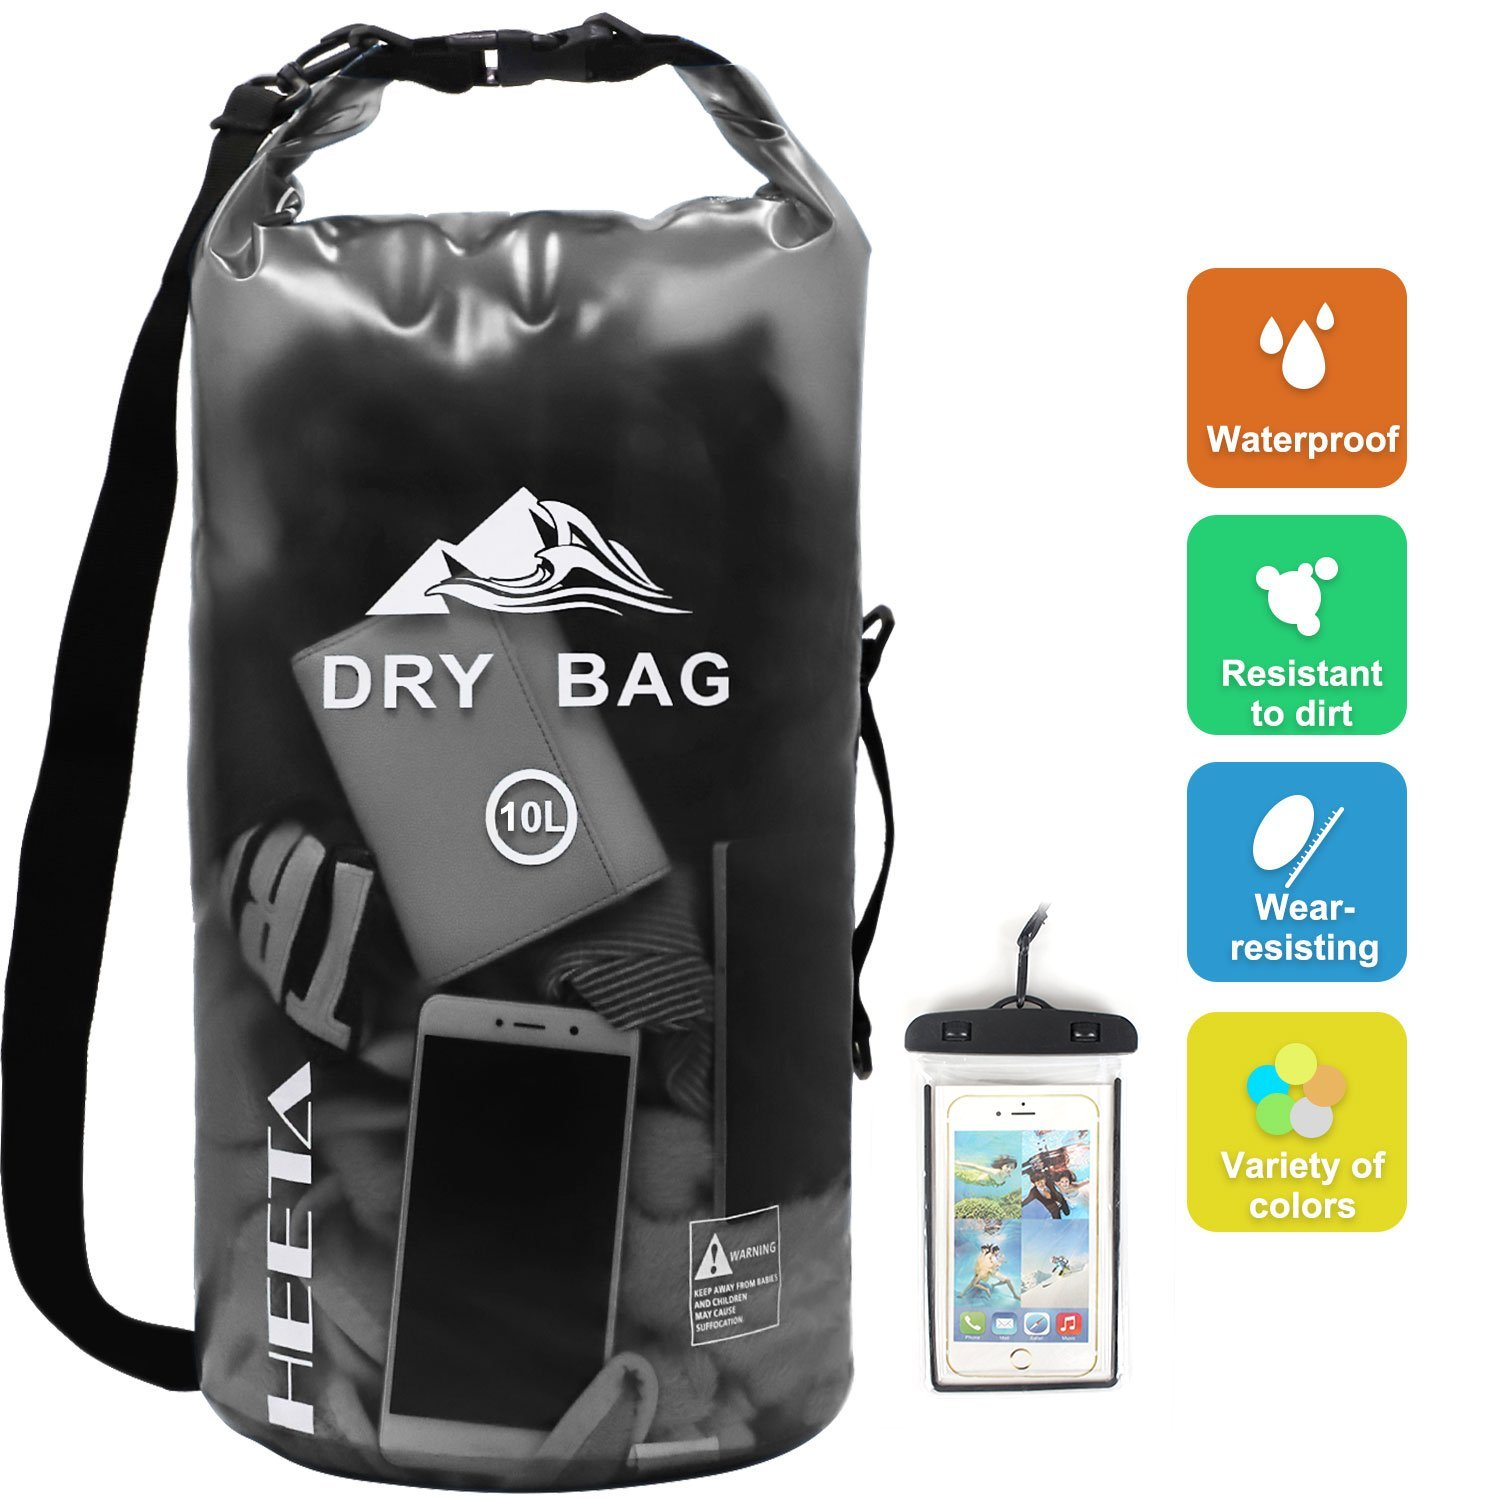 HEETA Waterproof Dry Bag 10L 20L Roll Top Lightweight Floating Sack Keeps Gear Dry for Boating Hiking Kayaking Fishing Camping Swimming Boating and Other Outdoor Activities Transparent